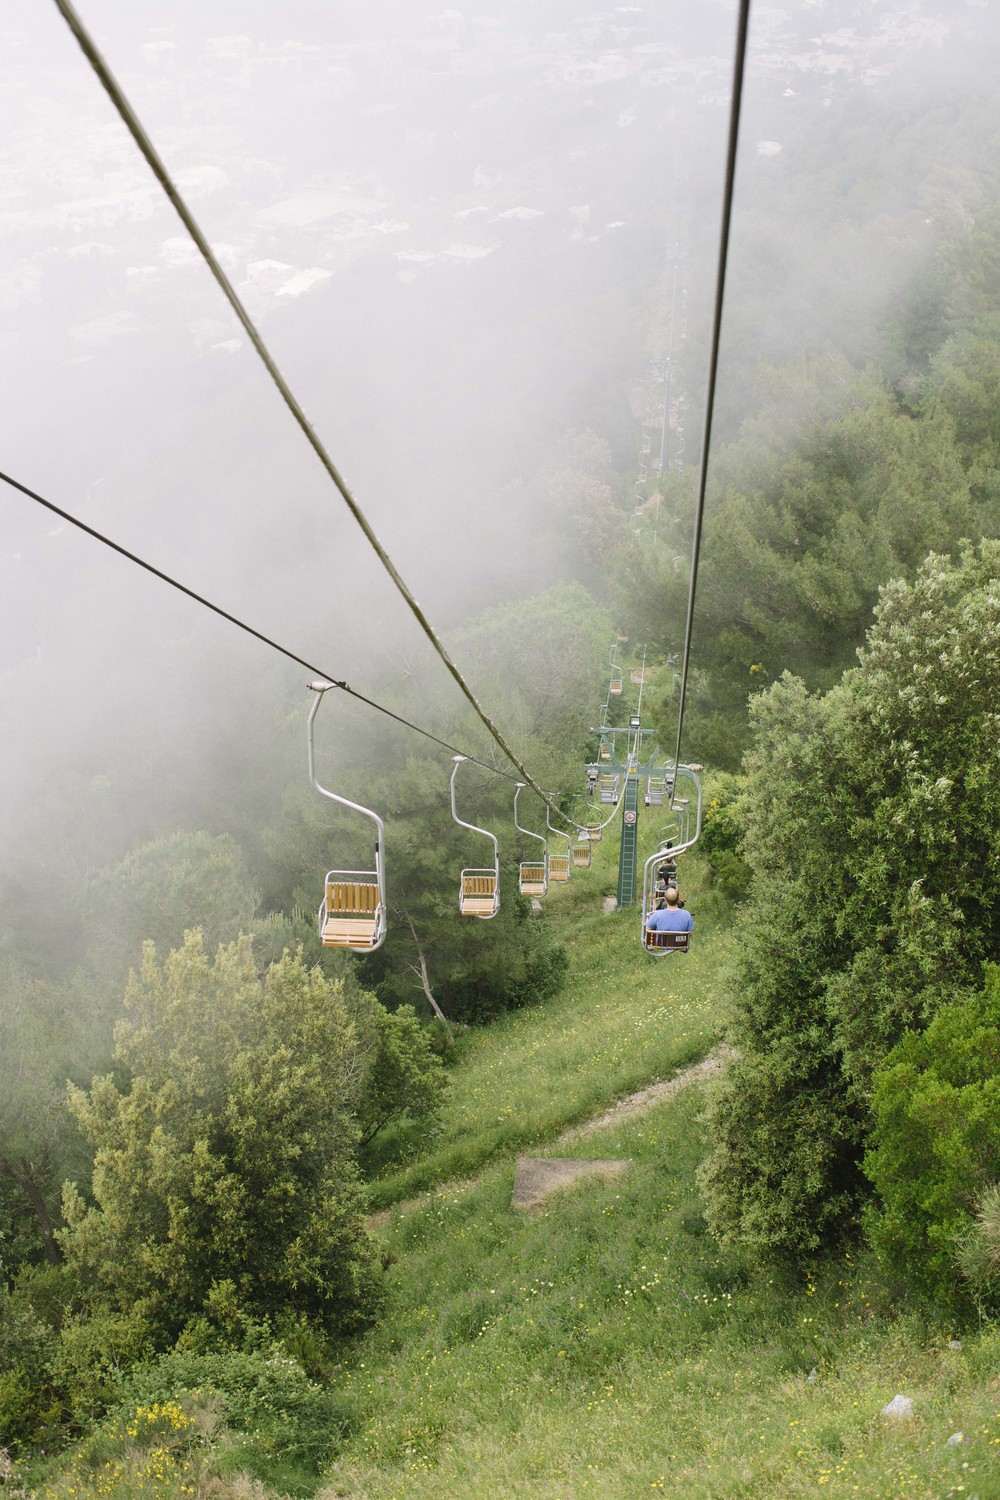 We took the chair lift to the top of Anacapri - the views were amazing and the ride through the clouds was pretty cool too.